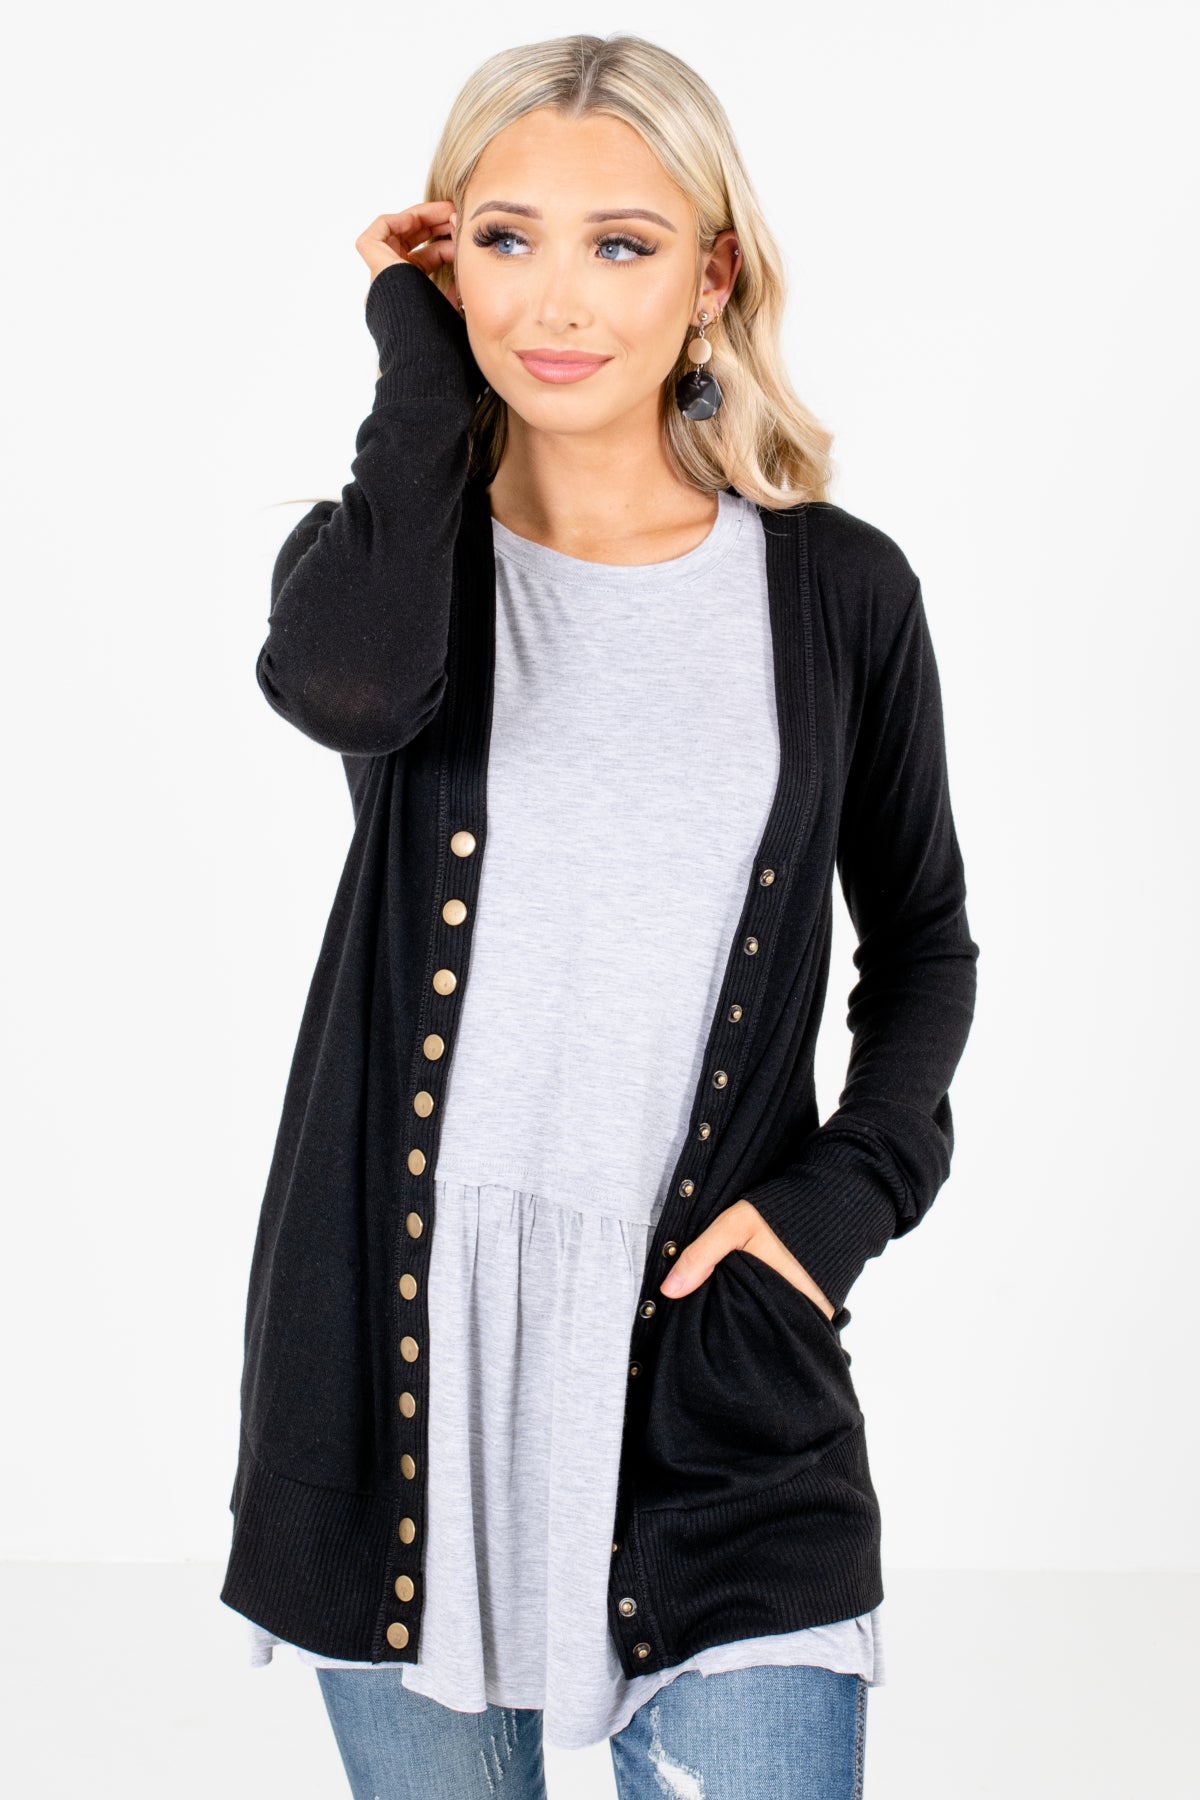 Snap Button Cardigan in Black